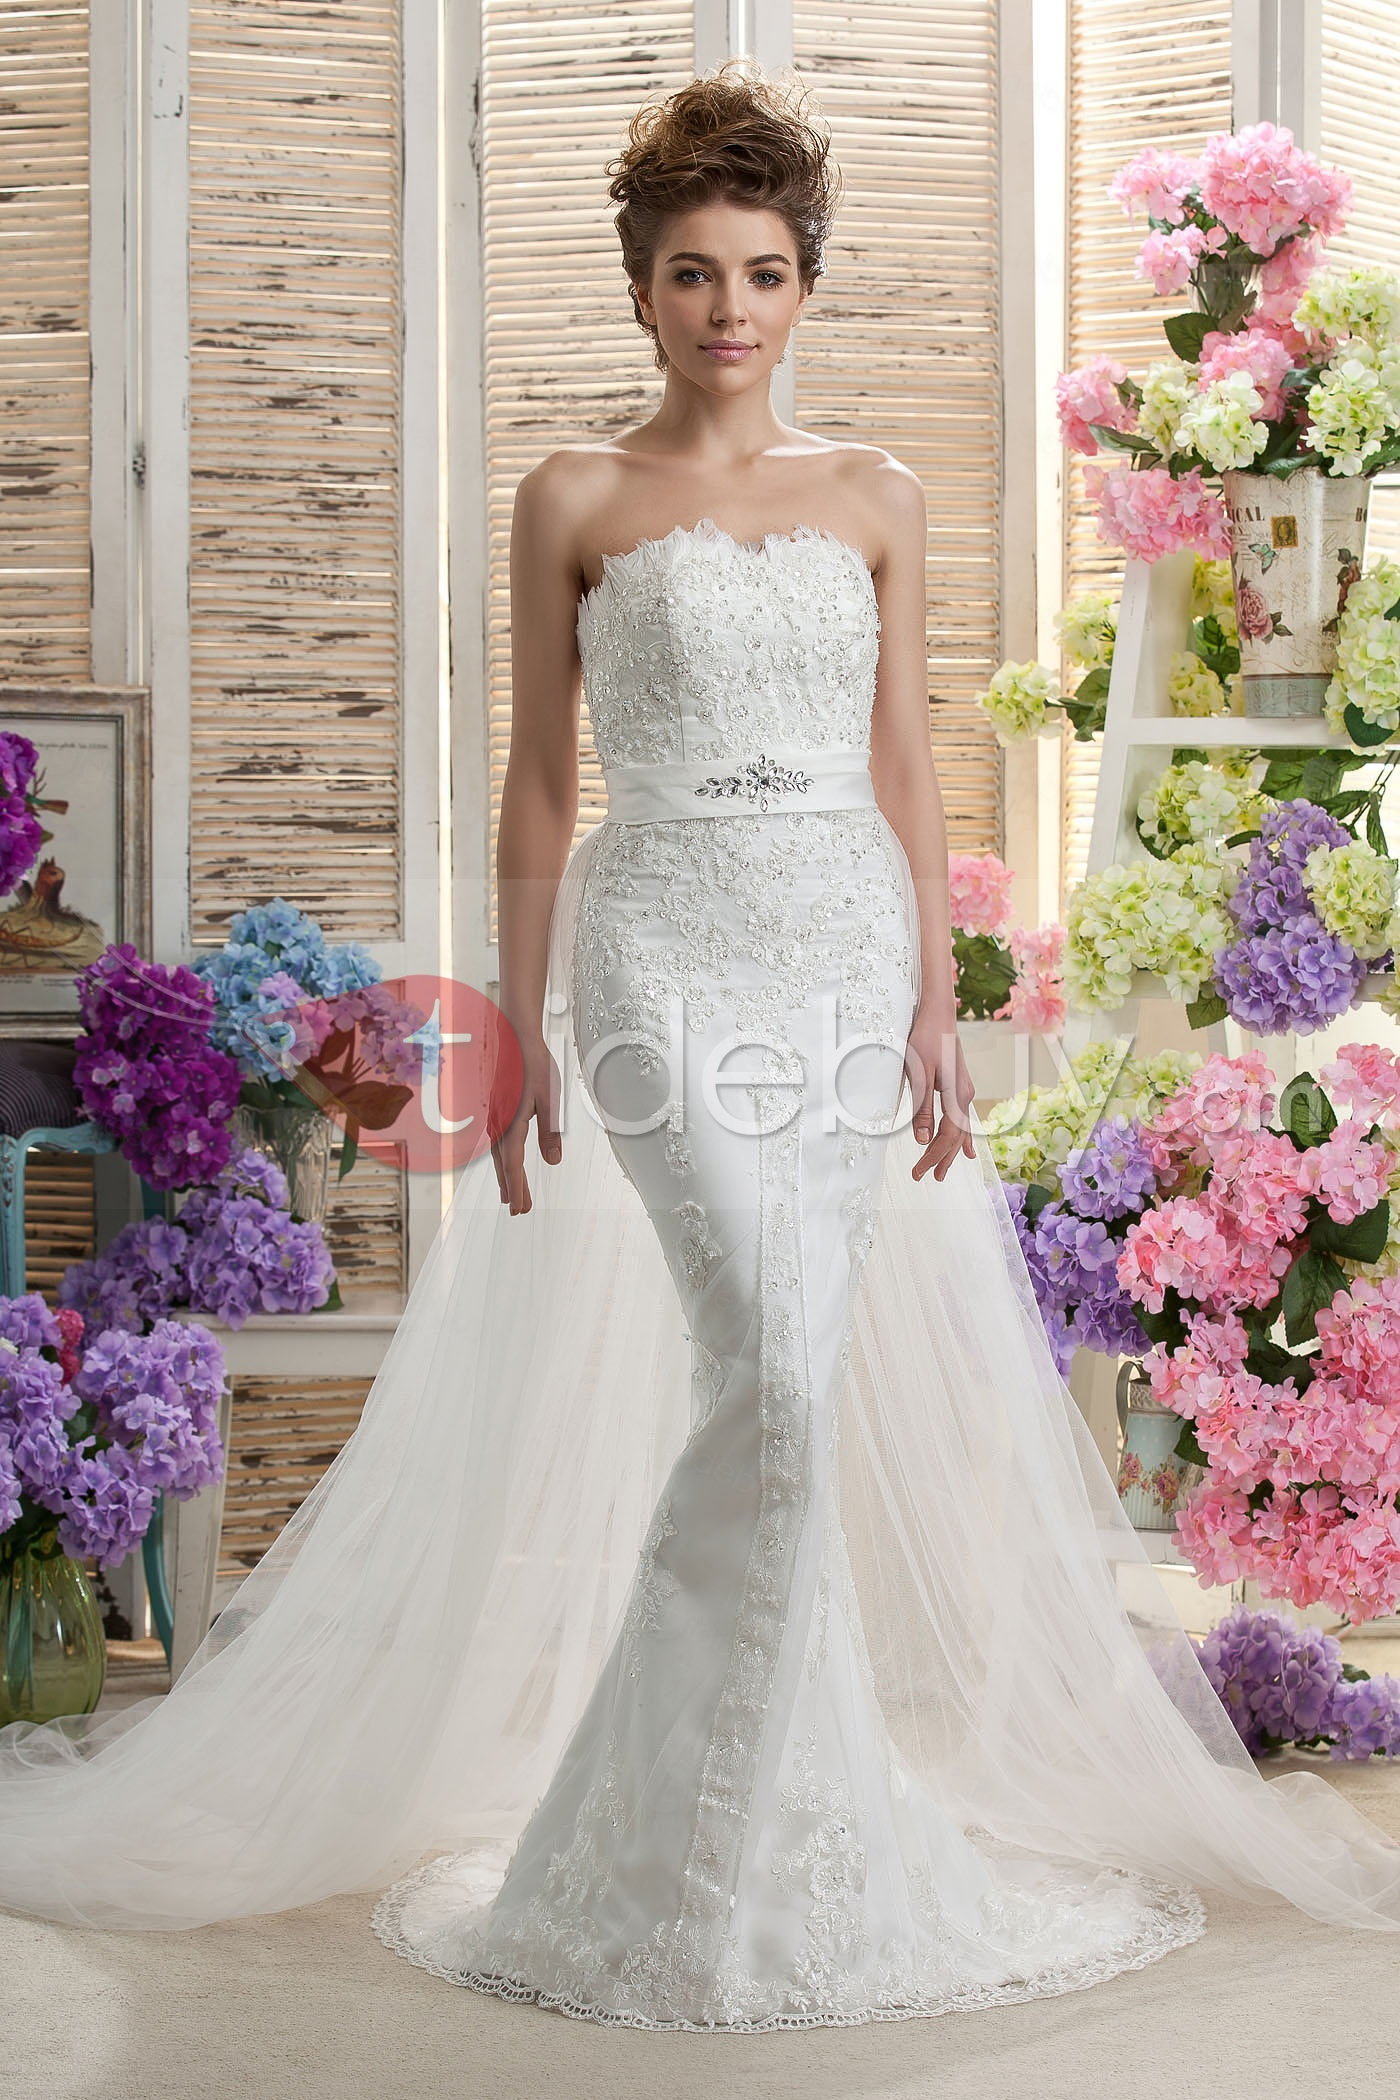 Tidebuy.com Wedding Dresses - Ocodea.com